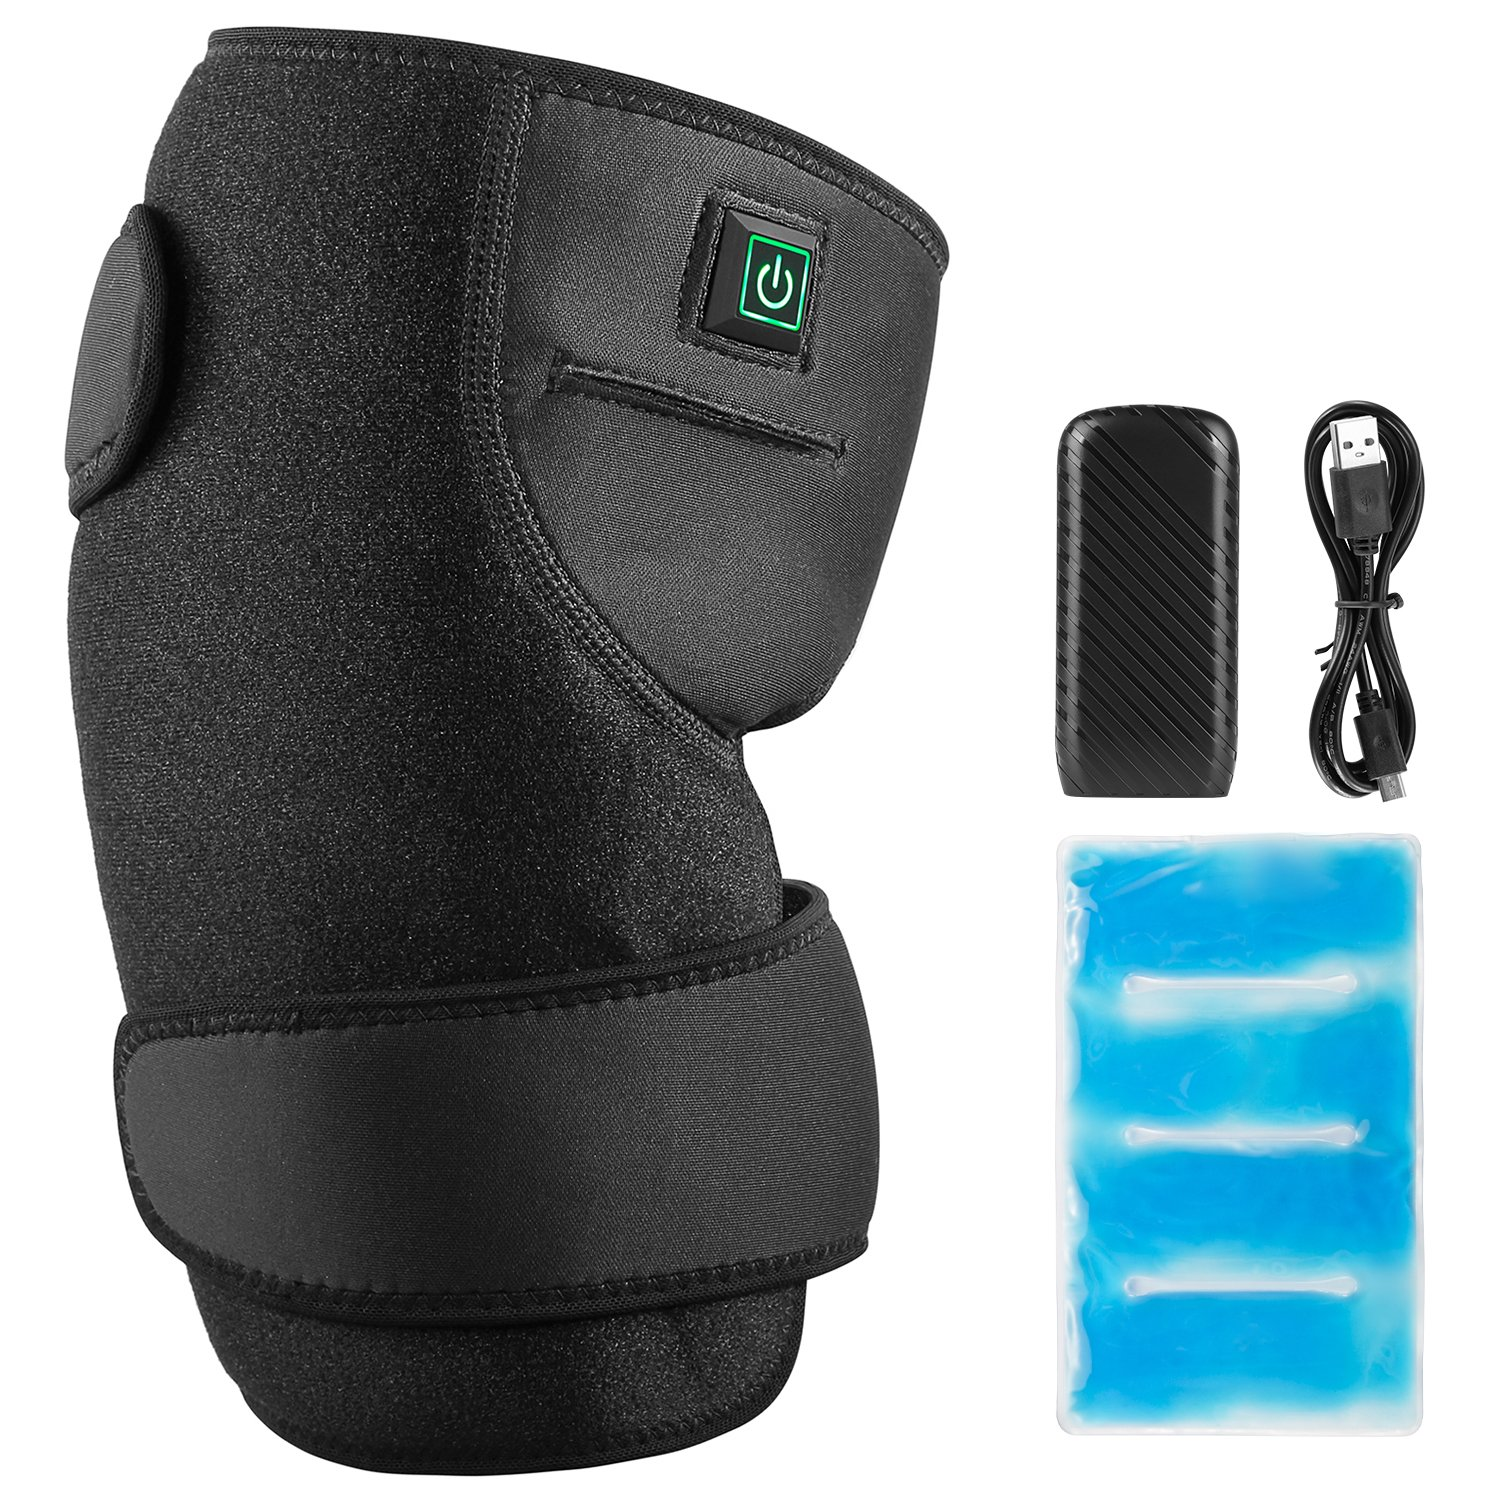 Fitfirst Knee Heating pad, 2 in 1 USB Powered Heat/Cold Therapy Knee Brace Wrap with 3 Heat Settings for Joint Pain, Arthritis Pain Relief, Ice Gel Pack and 5200mAh Power Bank Included